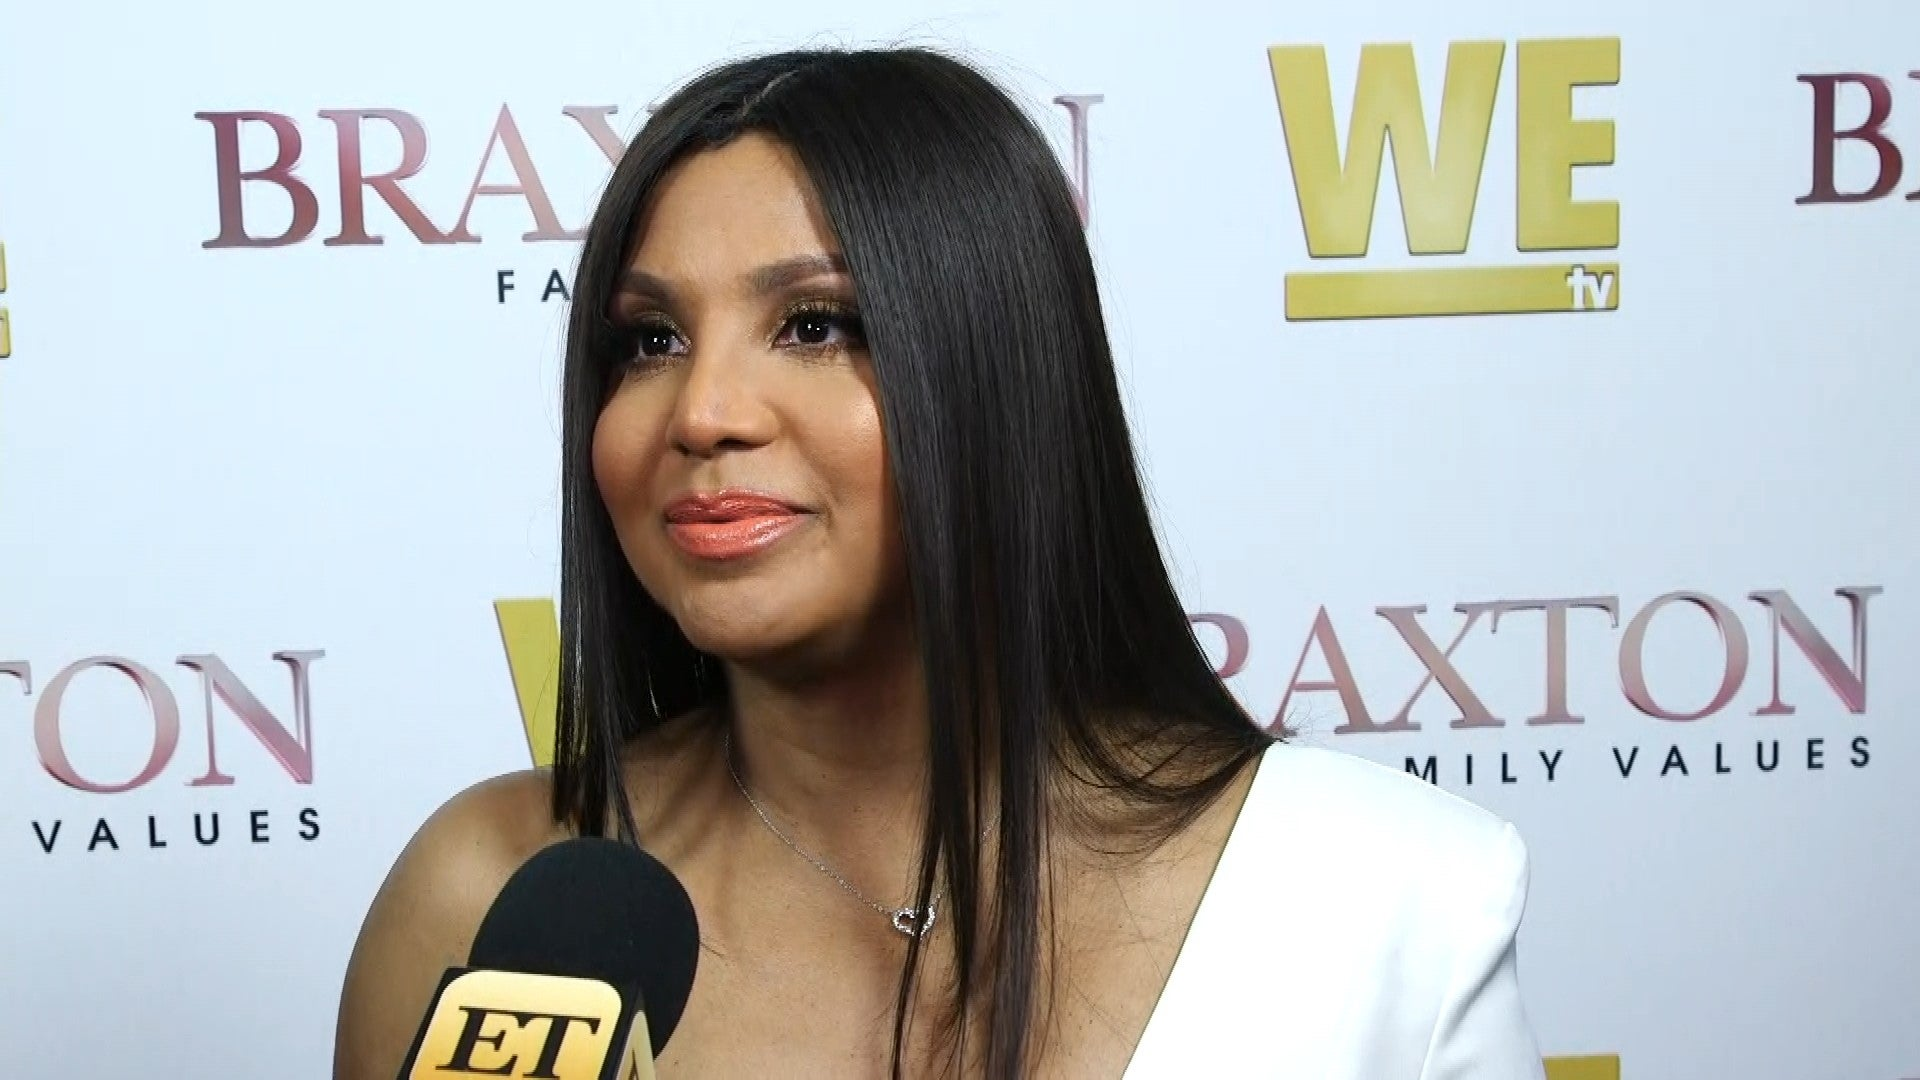 Toni Braxton Restocks Her Merch And Fans Could Not Be More Excited